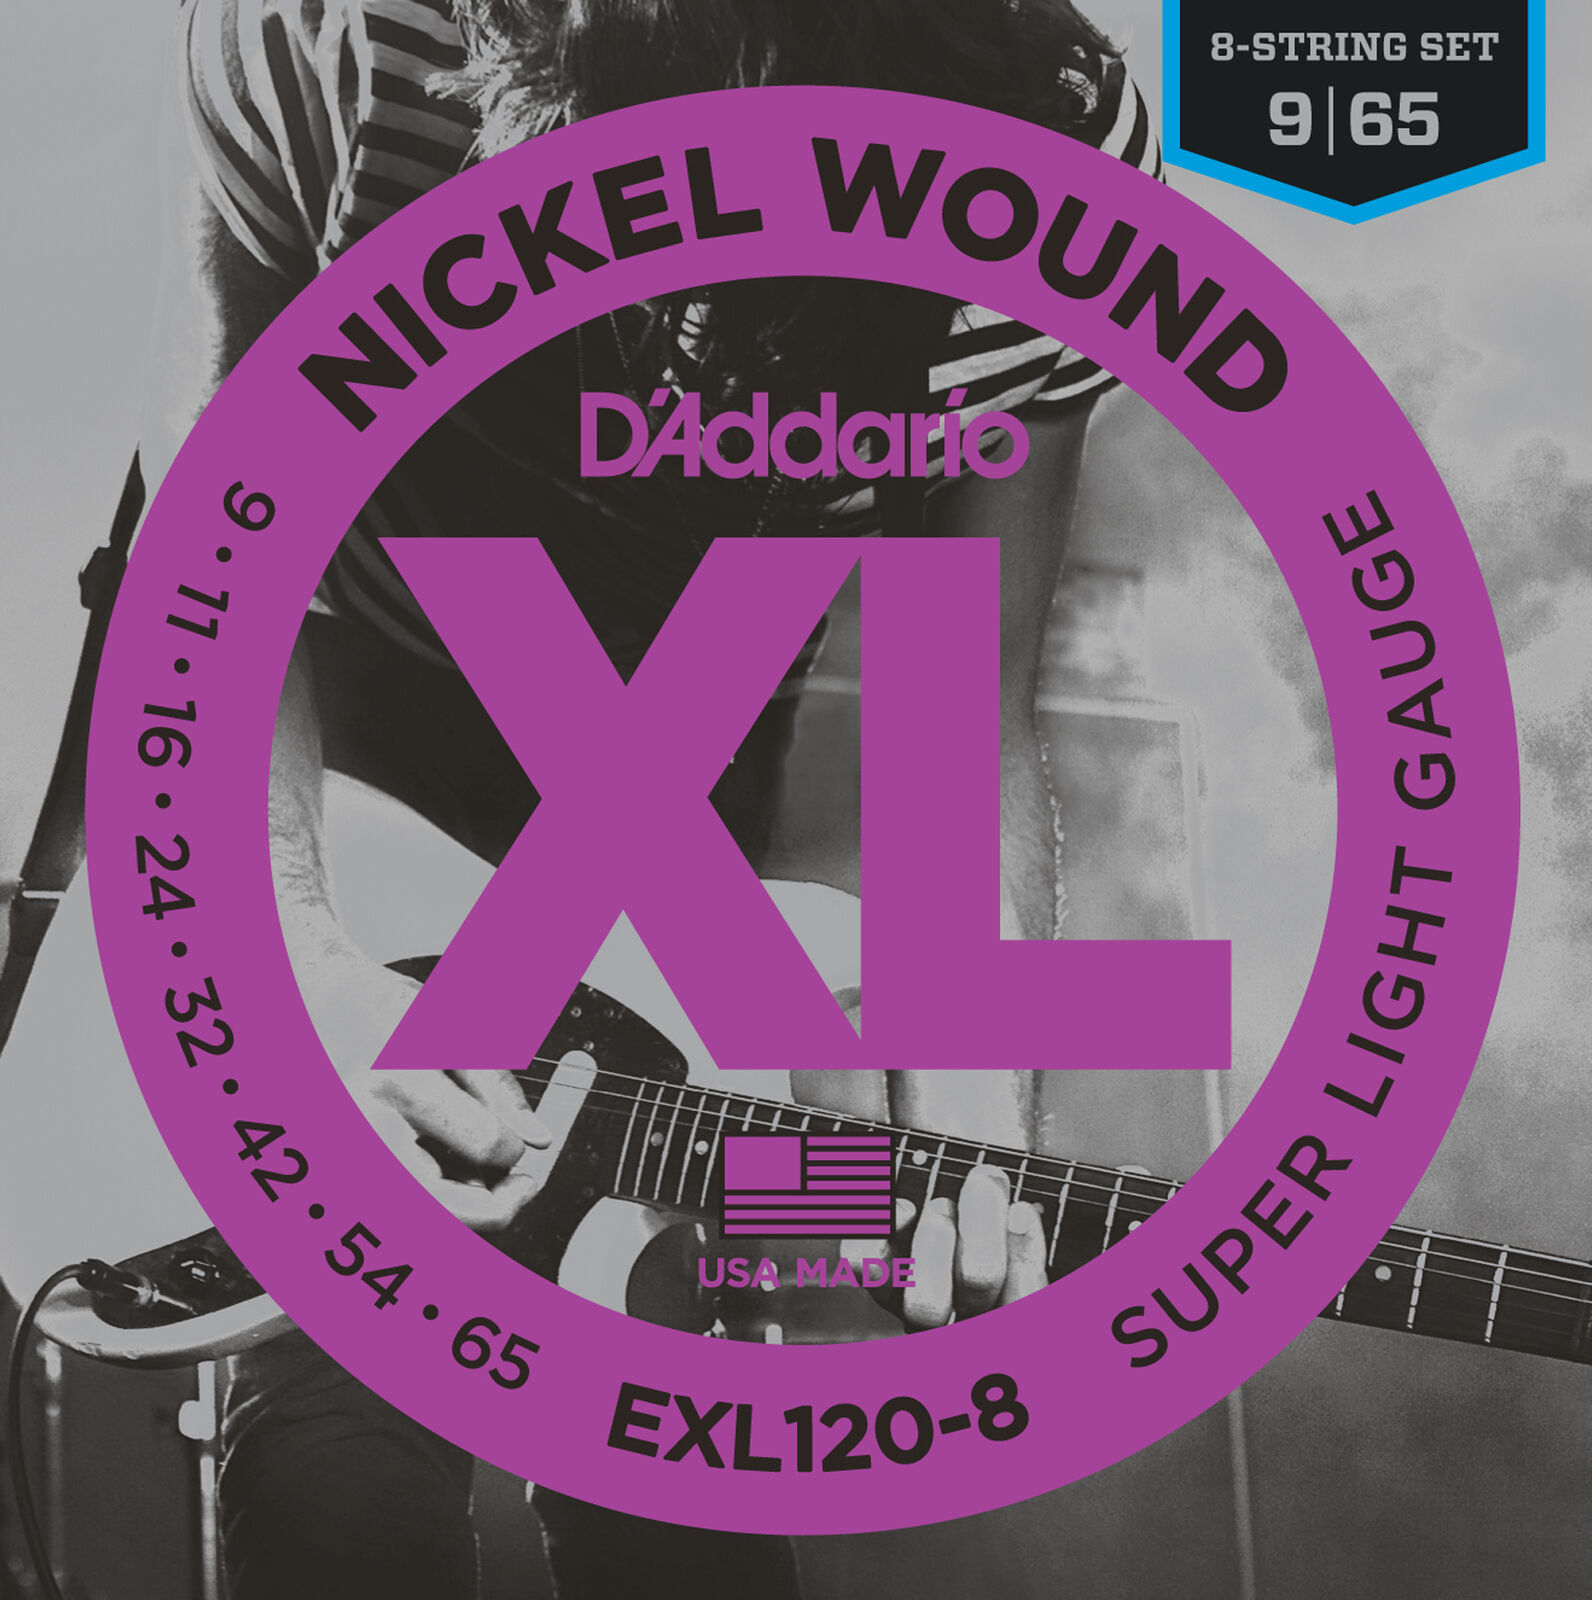 10 Sets D'Addario EXL120-8 8-String Nickel Super Lite Guitar Strings 9-65